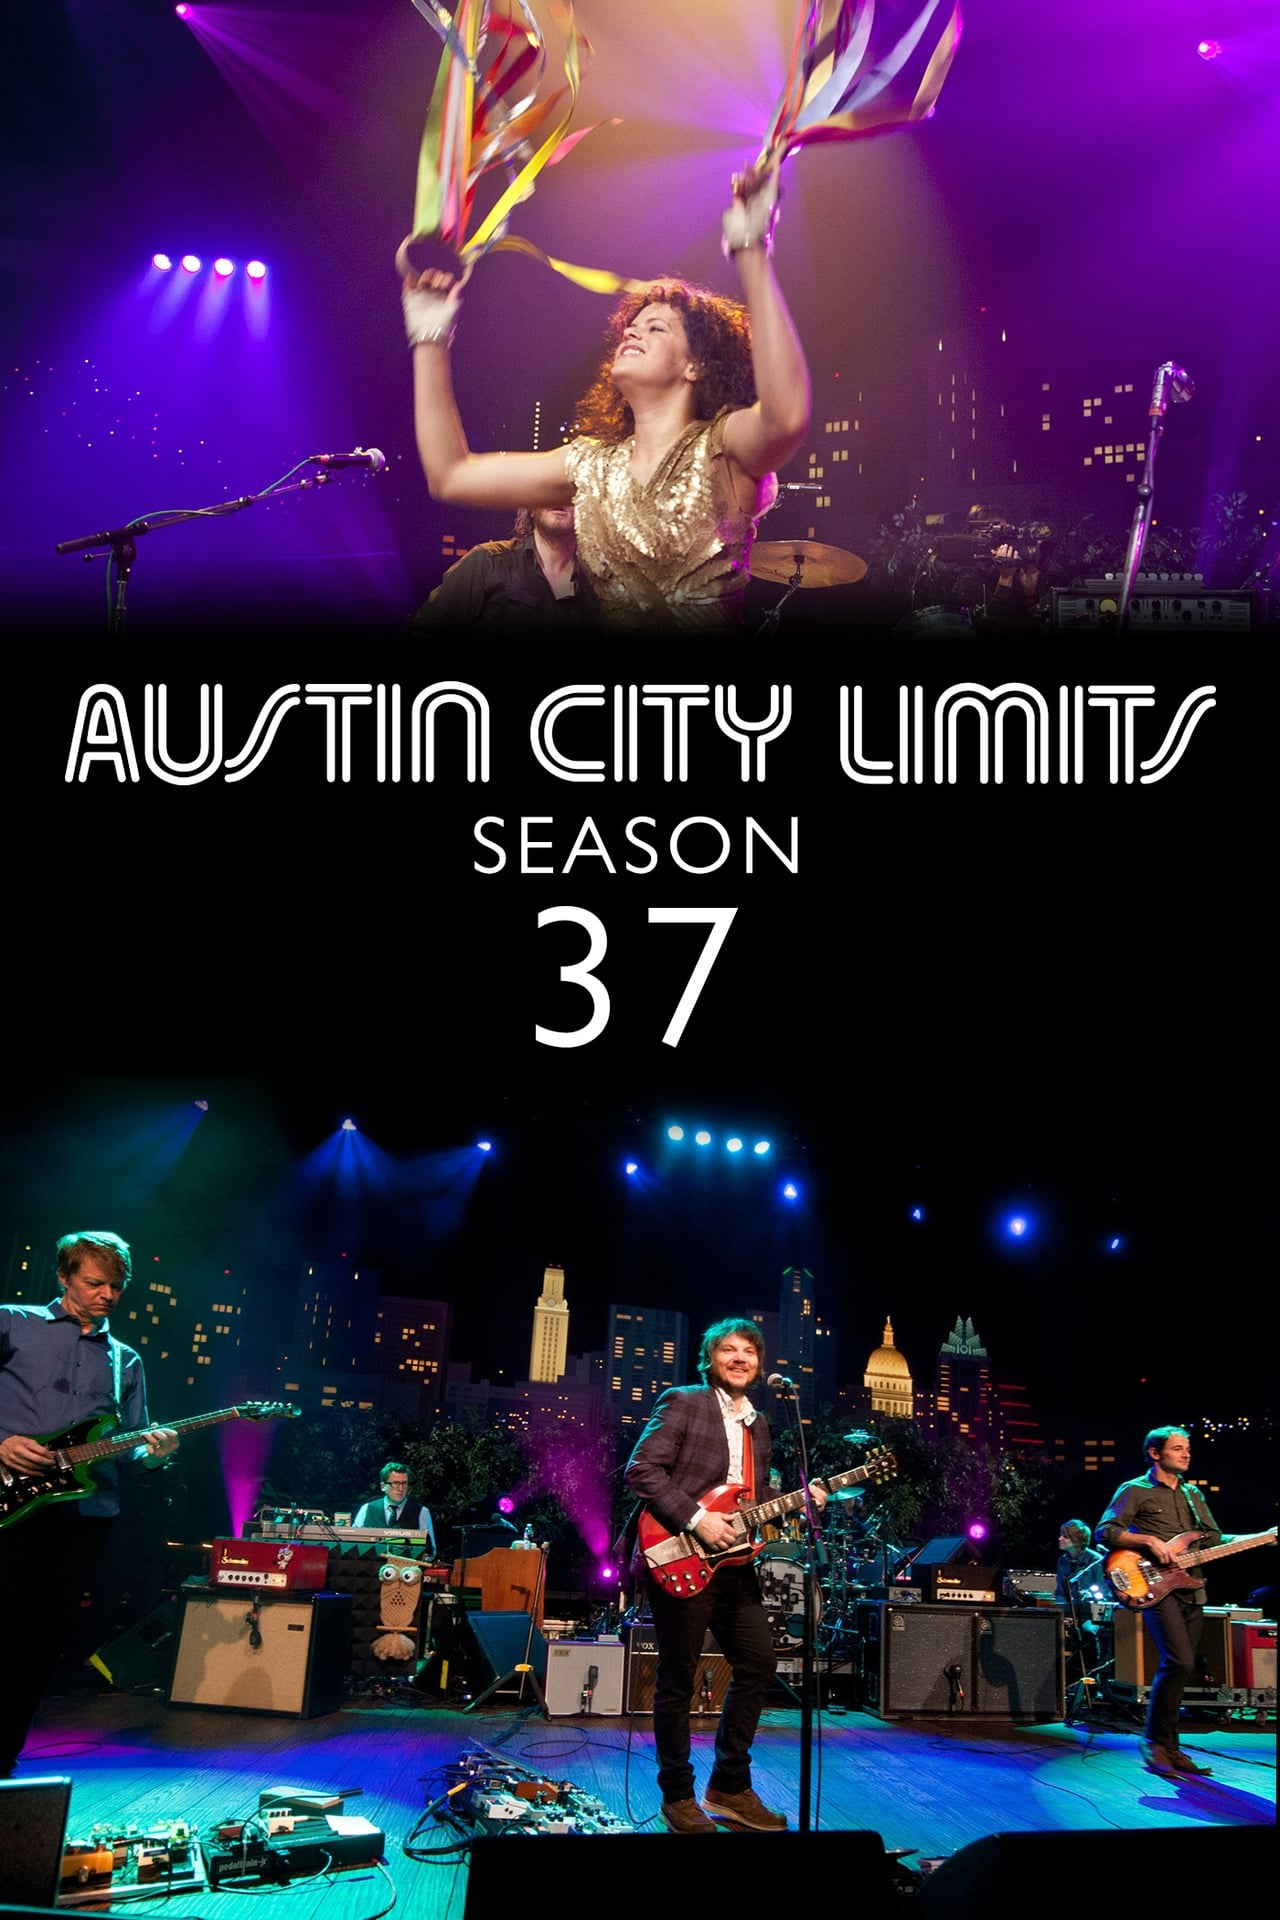 Austin City Limits Season 37 (2011) putlockers cafe